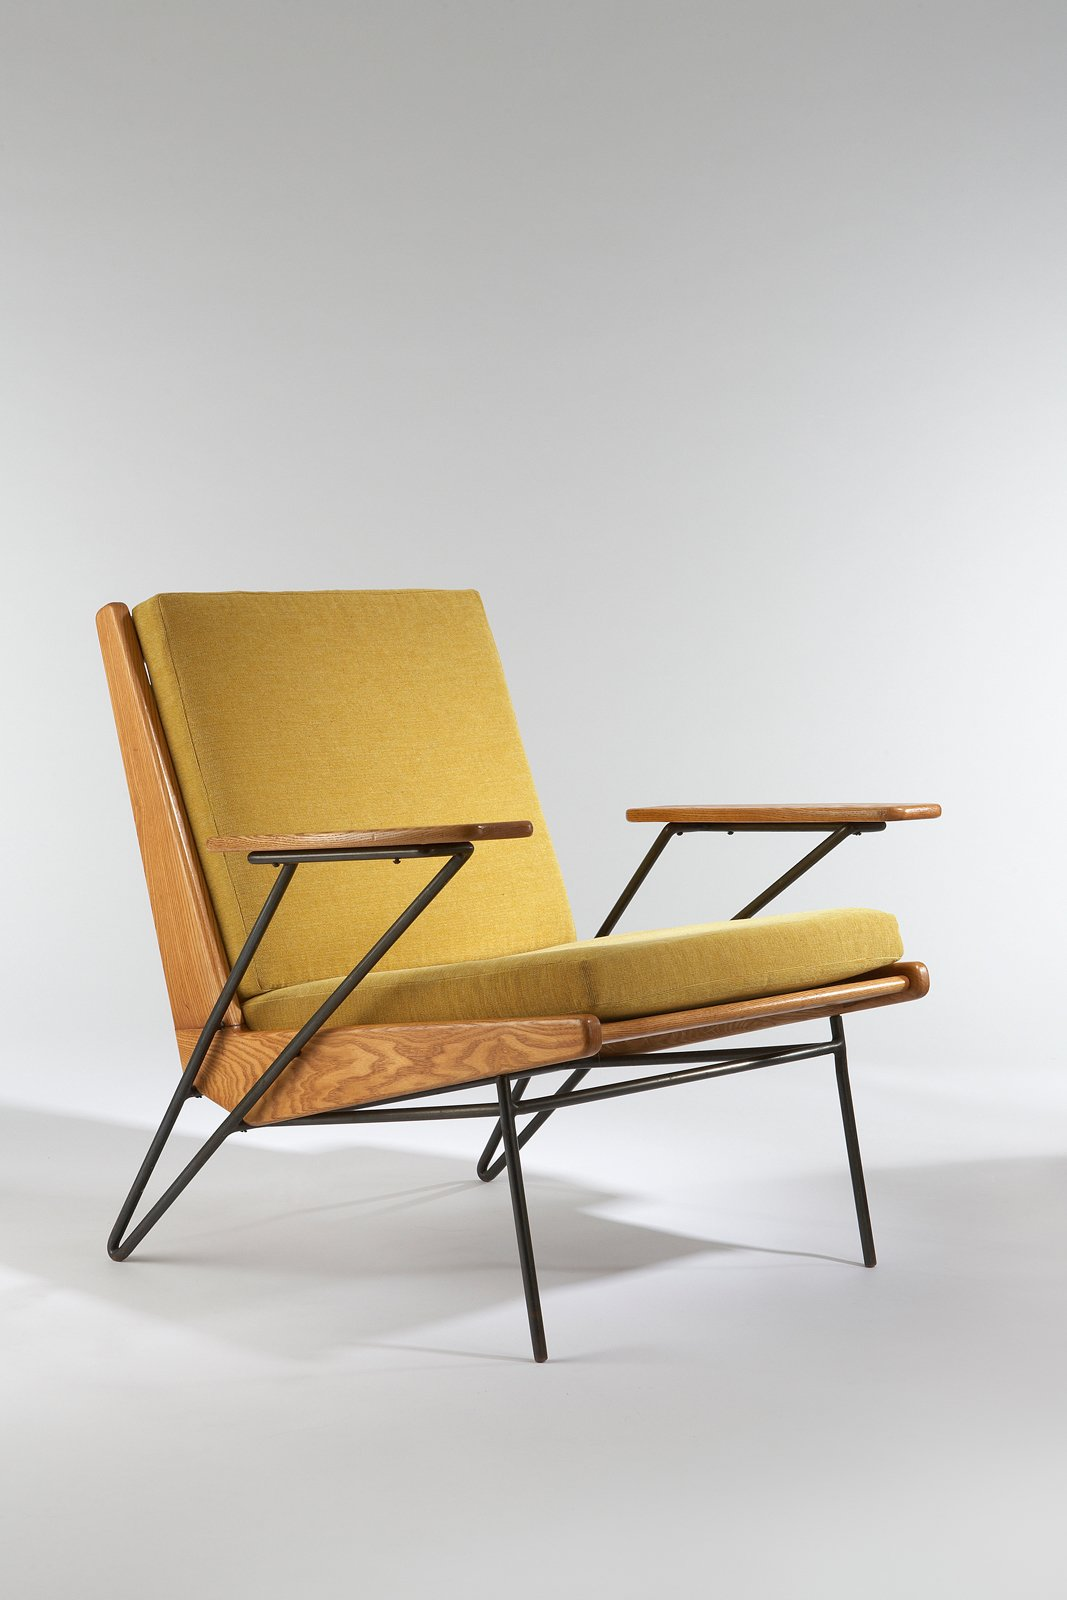 Armchair, 1953. Ash, black enameled metal, upholstered. By Pierre Guariche.  Photo 1 of 10 in Design Miami and Art.sy: Partners in Design from 3 Tips for Mid-Century Modern Collectors